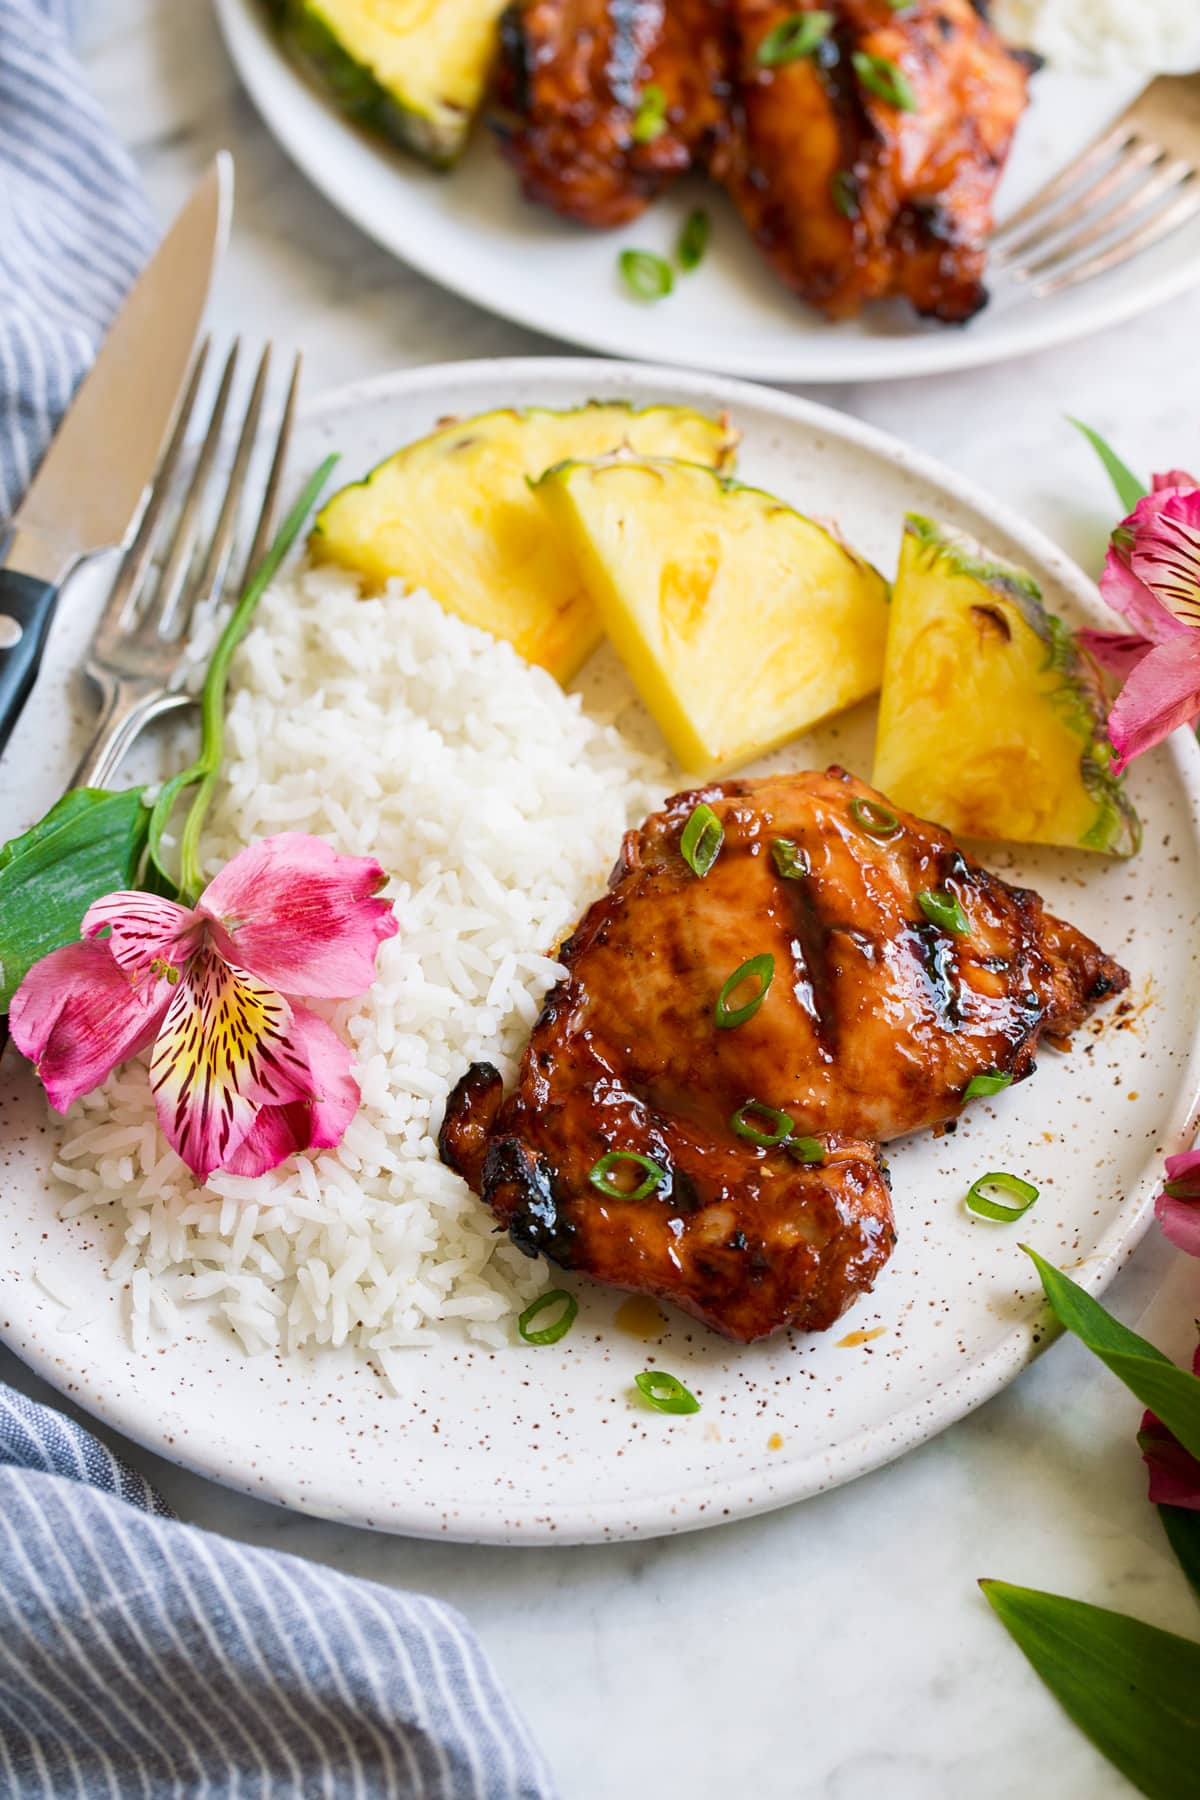 Plate with 1 huli huli chicken piece, pineapple, rice and a fresh flower. Shown from the side.